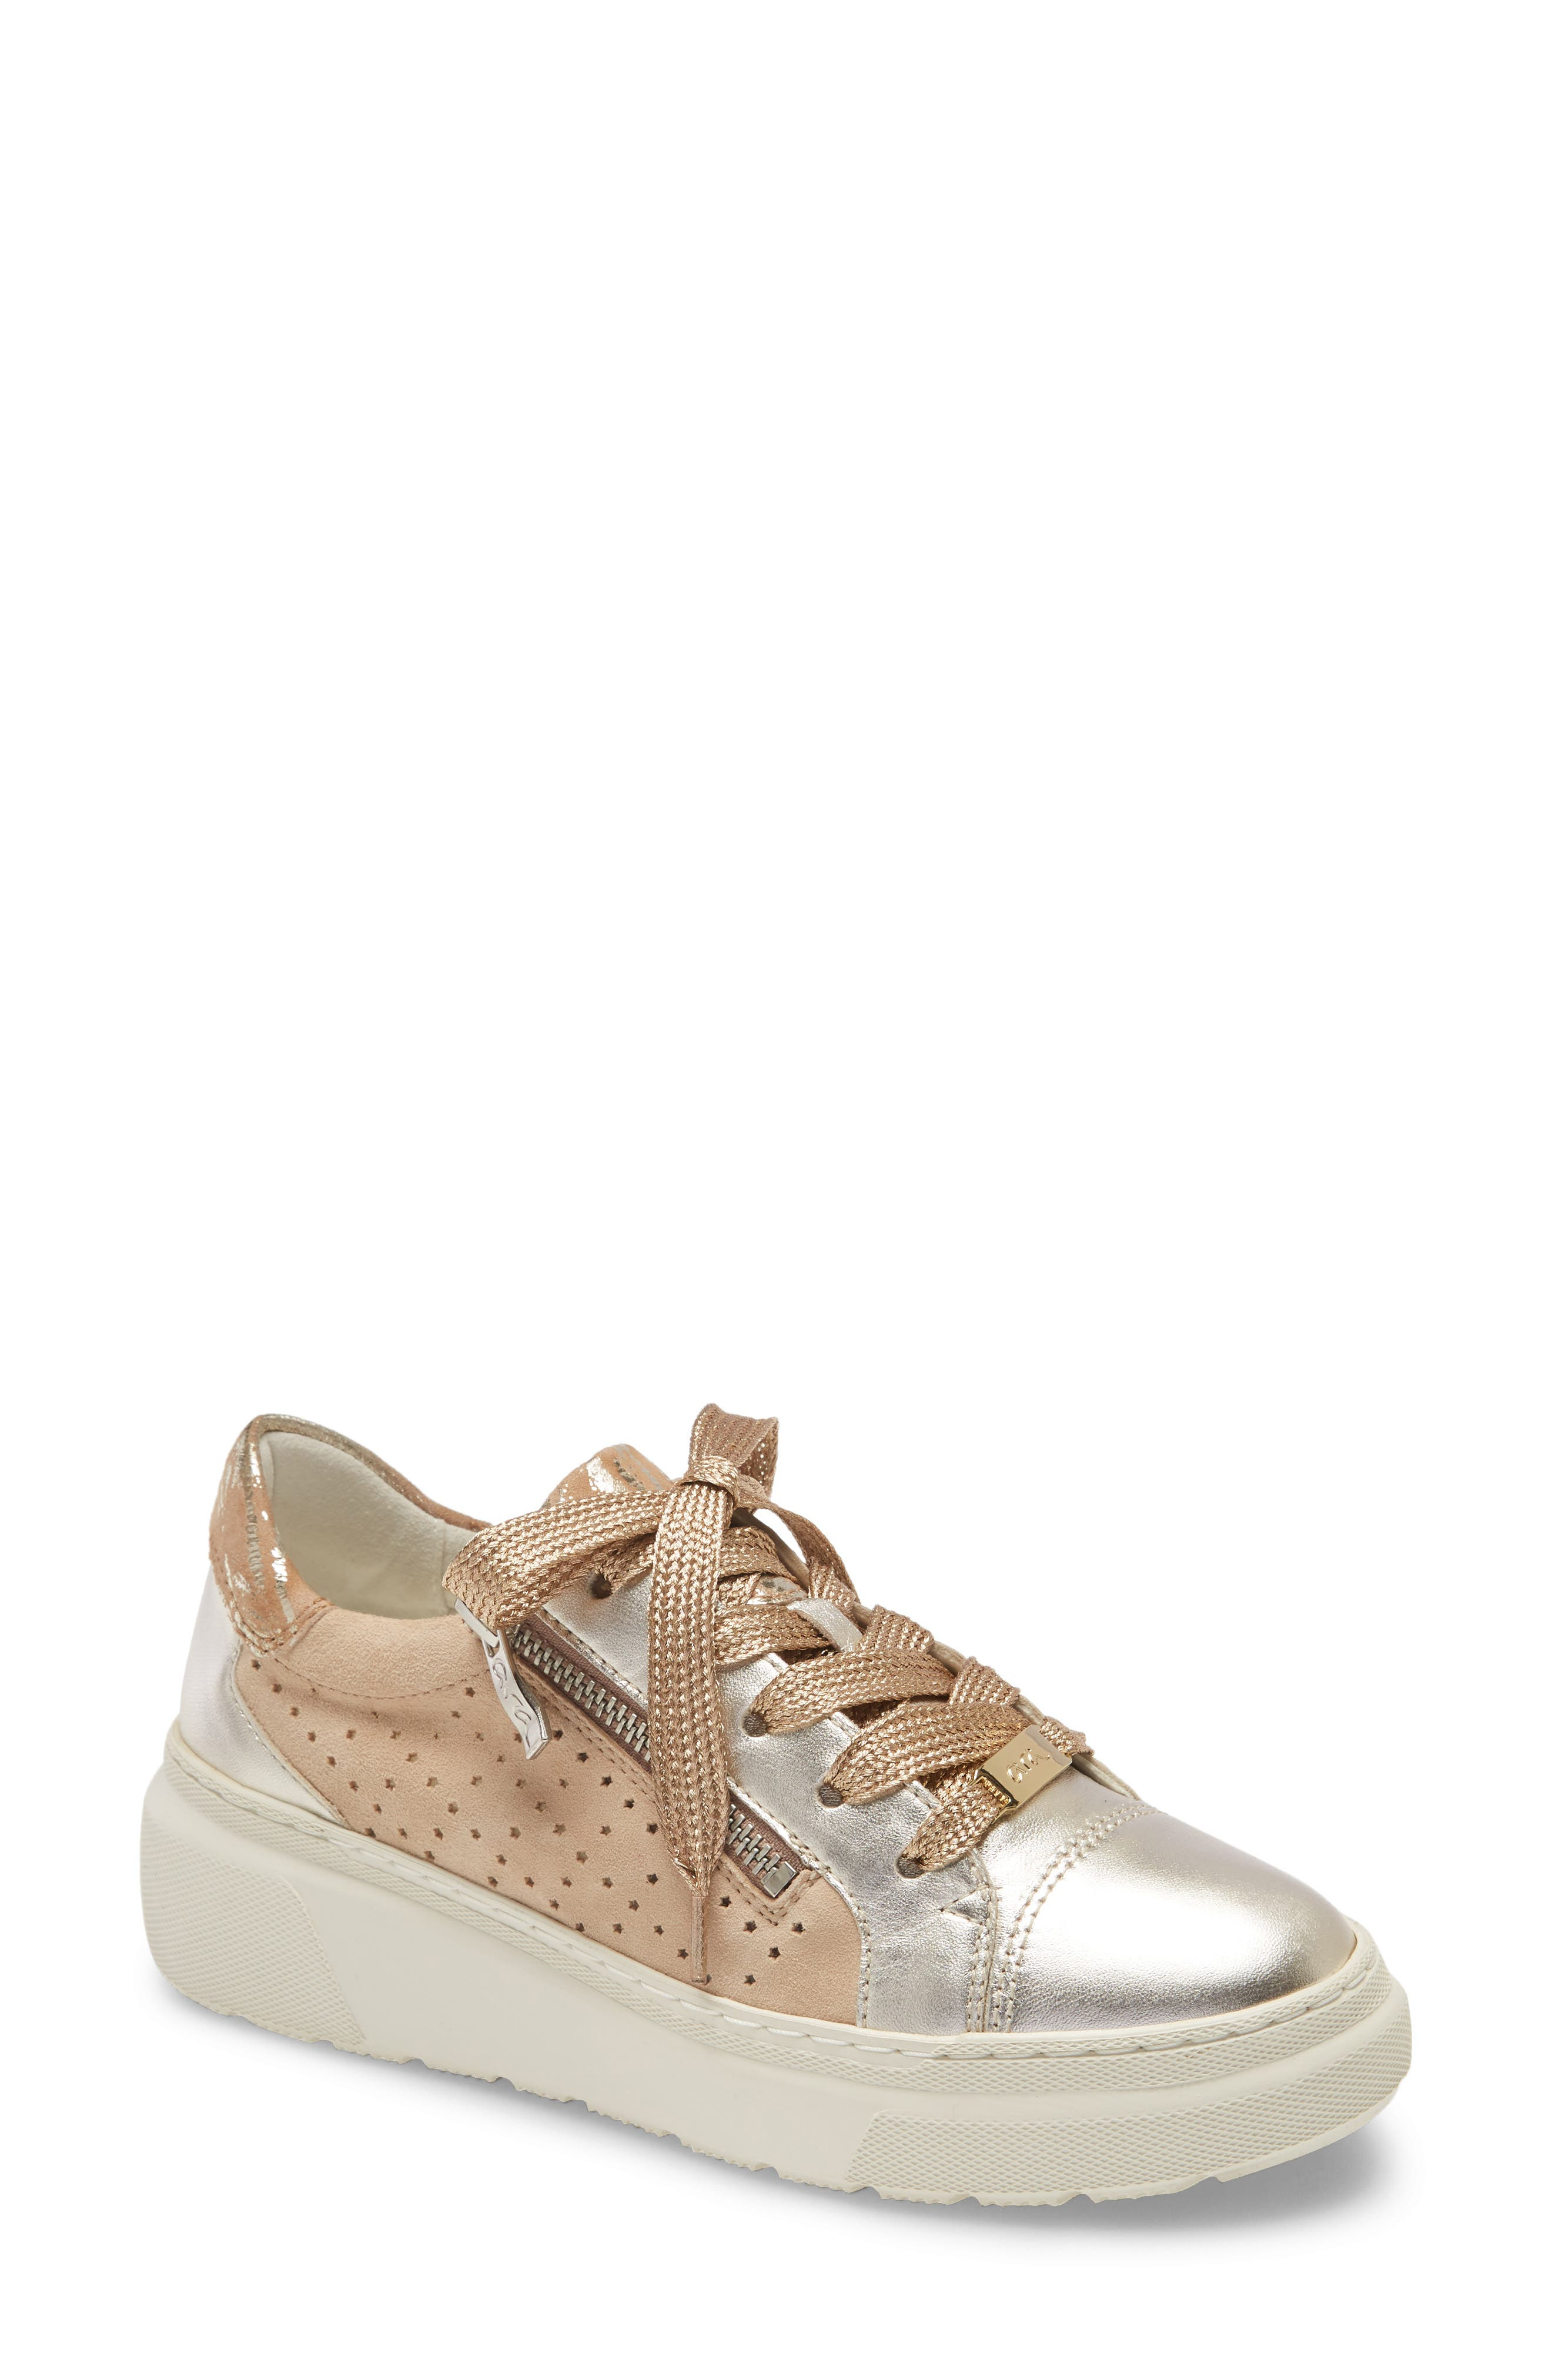 HighSoft technology meets high style in this mixed-metallic sneaker with golden laces, a supple padded insole and comfortable arch support. Style Name: Ara Lanette Sneaker (Women). Style Number: 6010409. Available in stores.